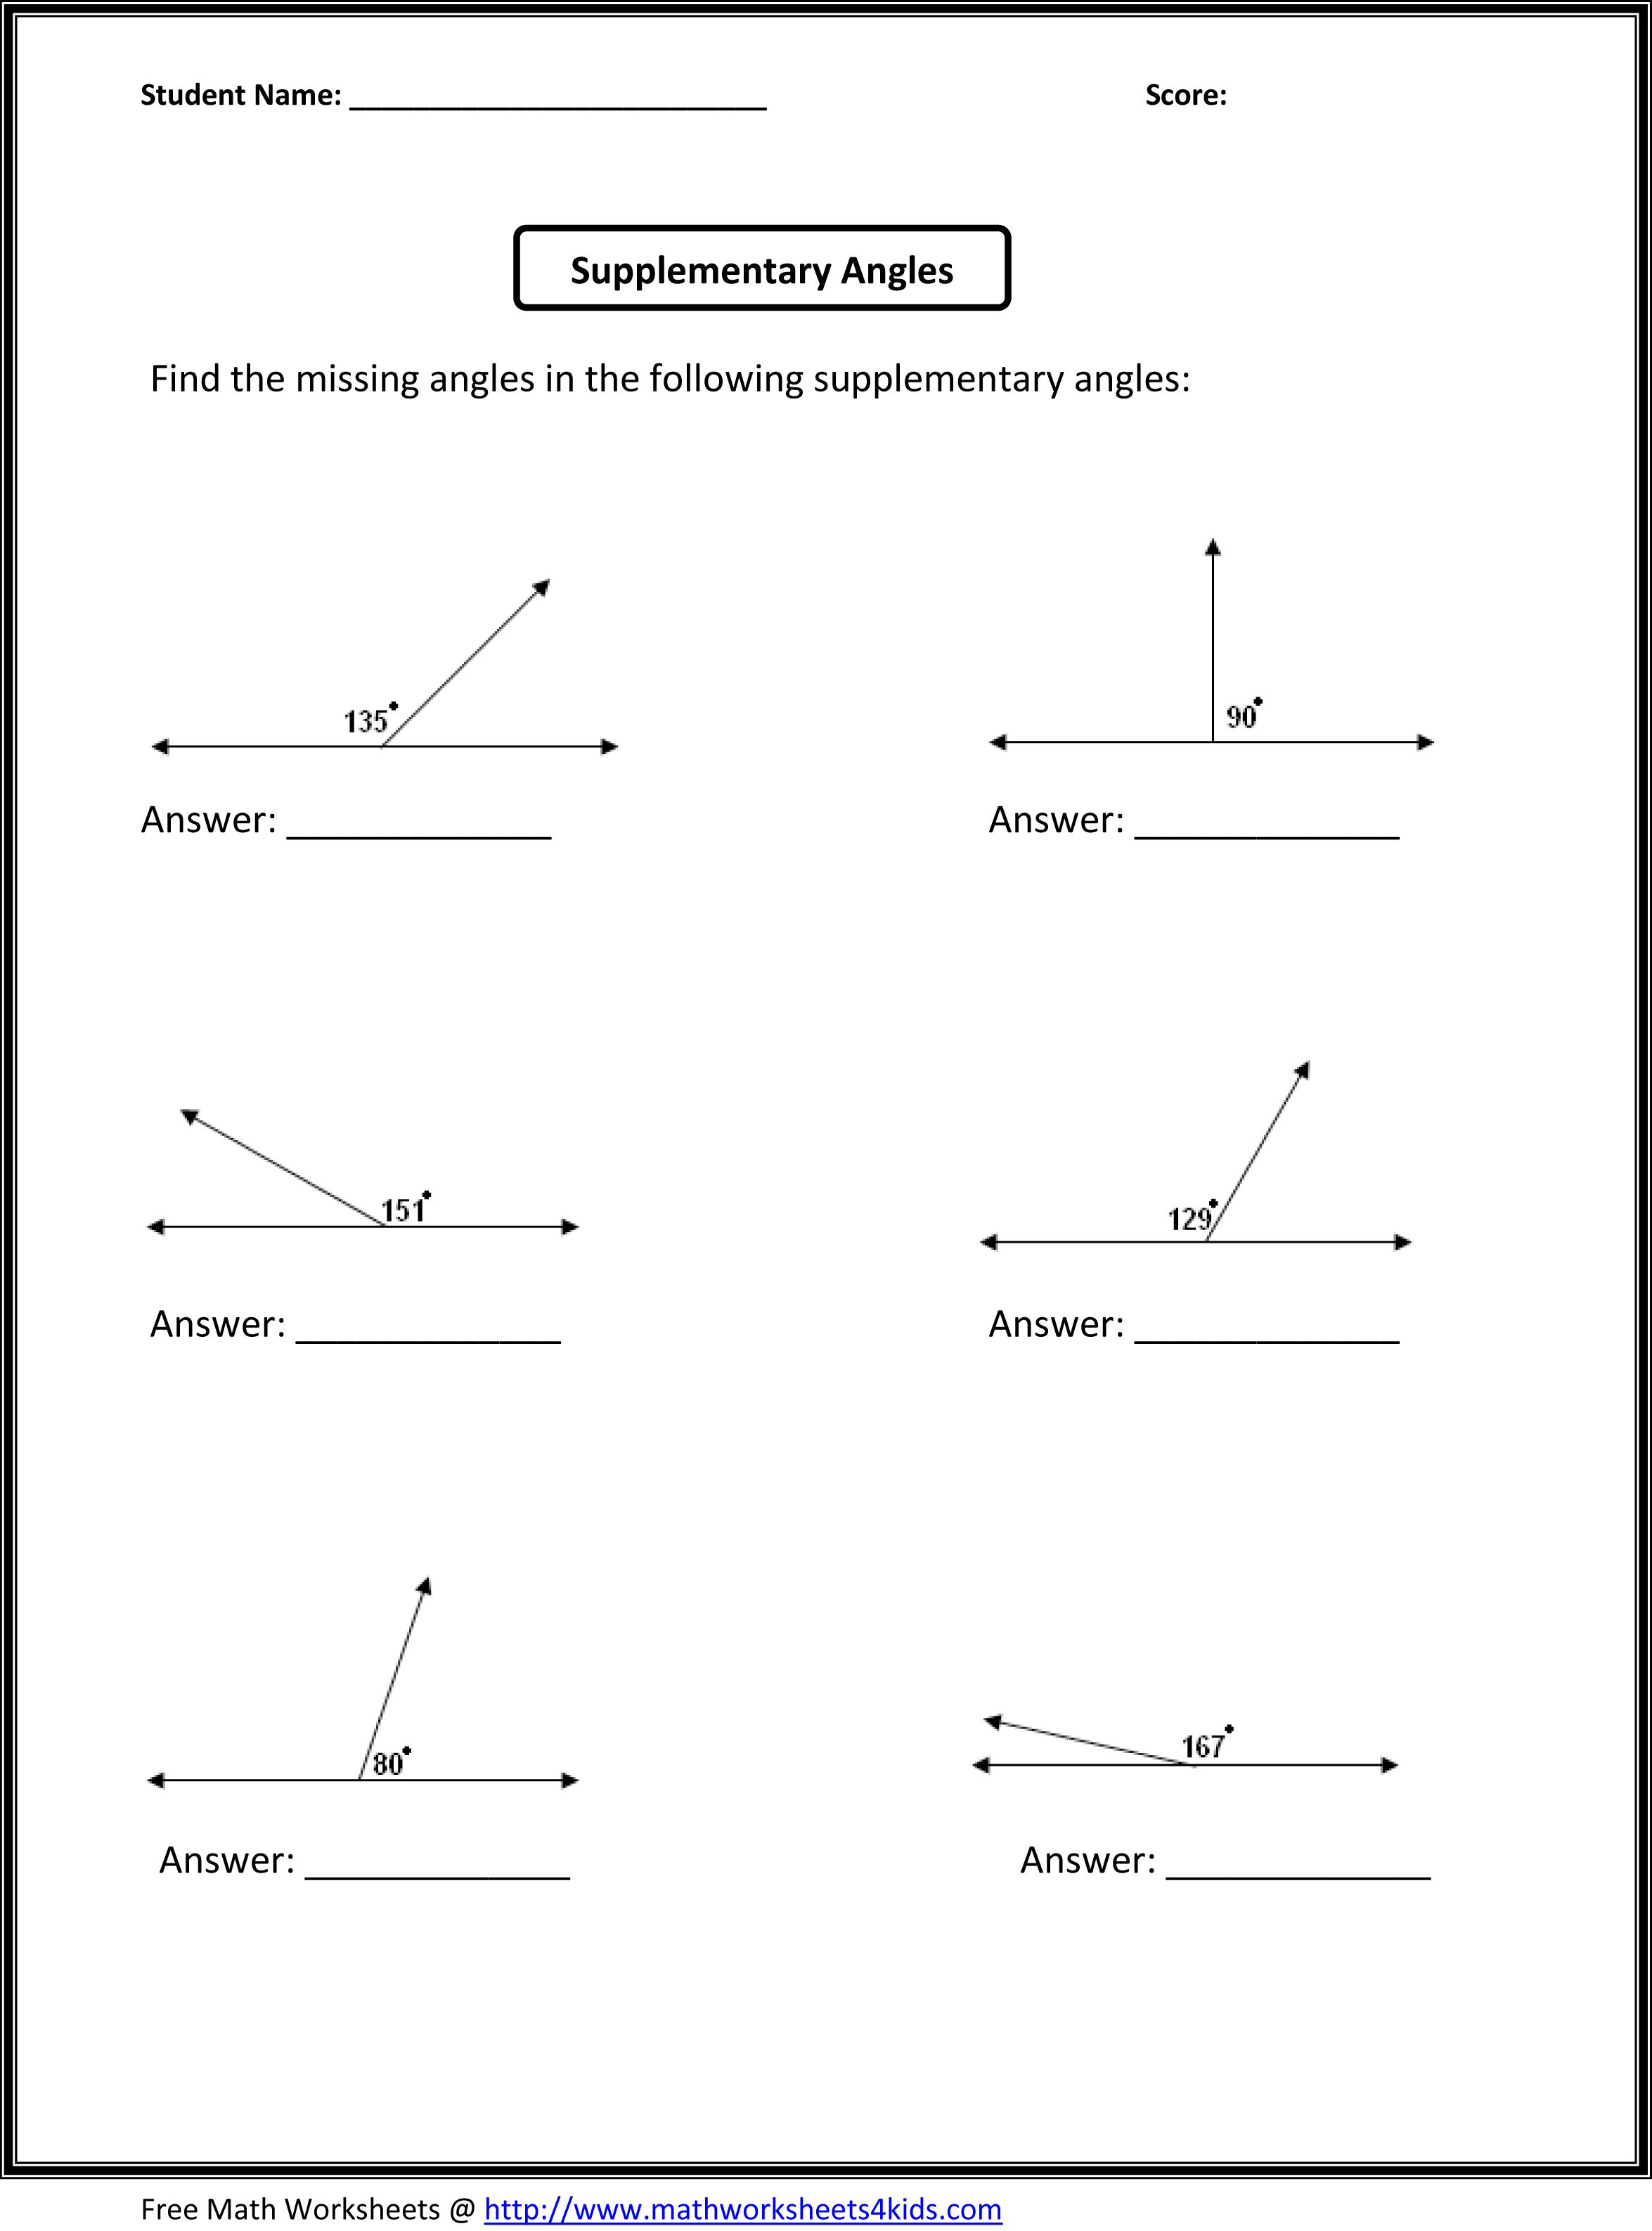 Uncategorized Reference Angle Worksheet supplementary angles classroom madness pinterest math worksheets straight lines geometry relationships google search